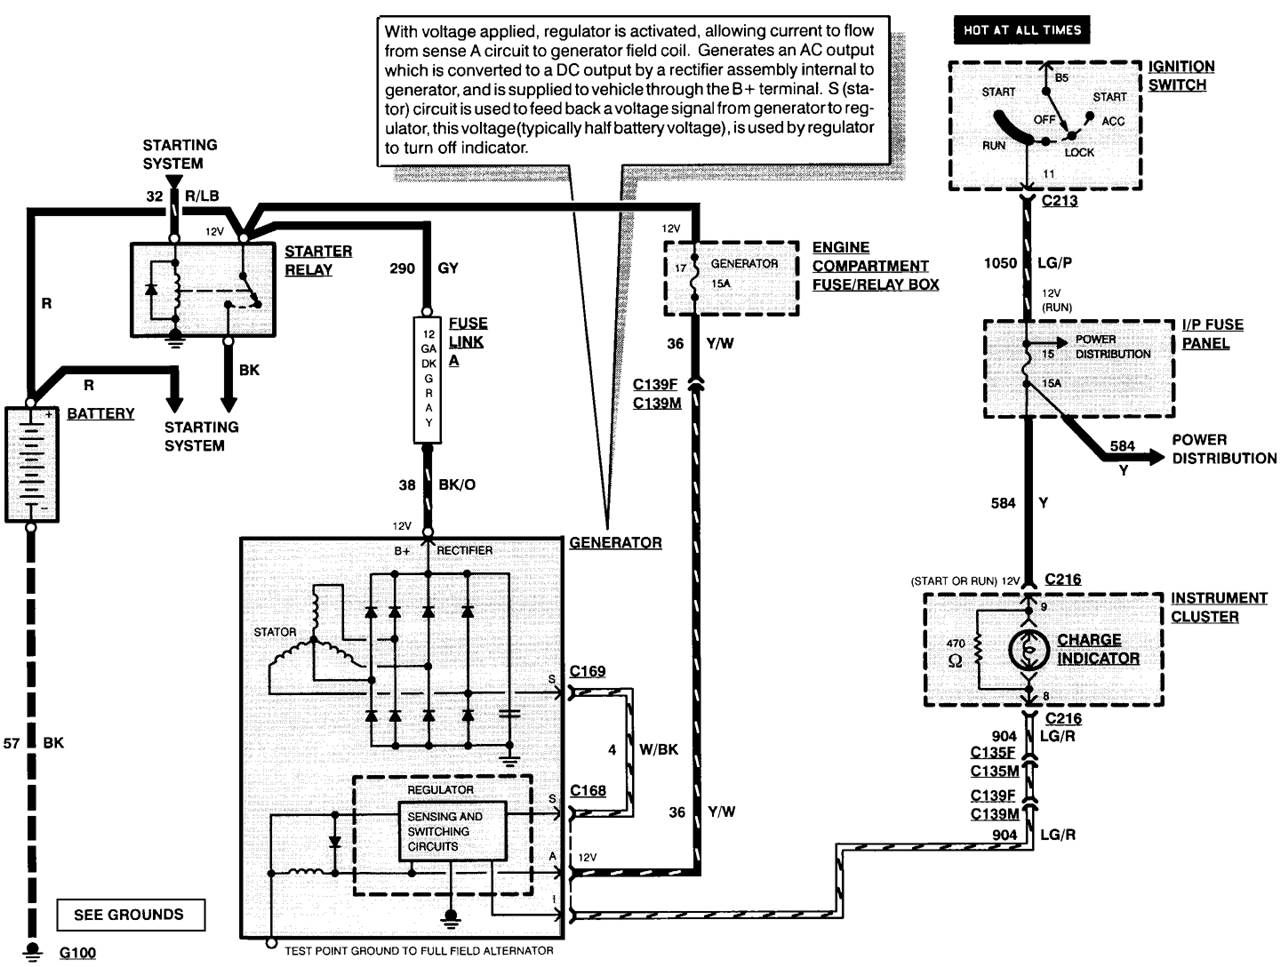 Ford alternator wiring diagram internal regulator ford alternator wiring diagrams carsut understand cars and 2004 ford focus alternator wiring diagram at suagrazia.org